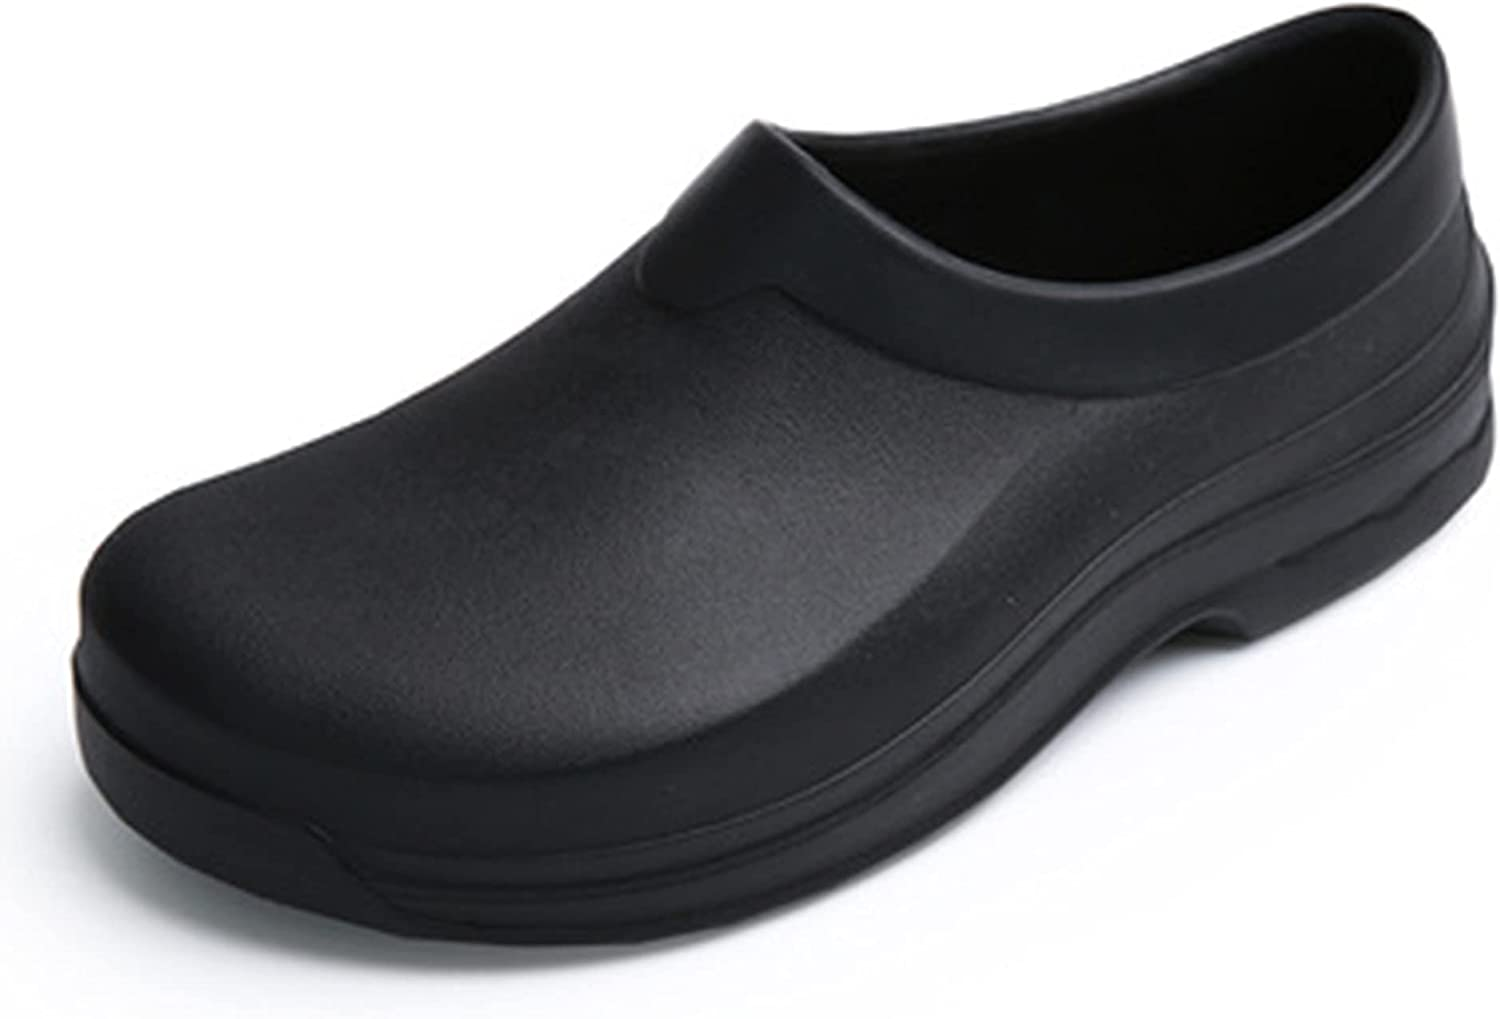 LIPROFE Chef Shoes for Men - Non Slip Oil Resistant Waterproof Safety Work Shoes Comfortable Nursing Nurse Shoes for Gardener Men Women Indoor and Outdoor Chef Clogs for Kitchen Office Seaside